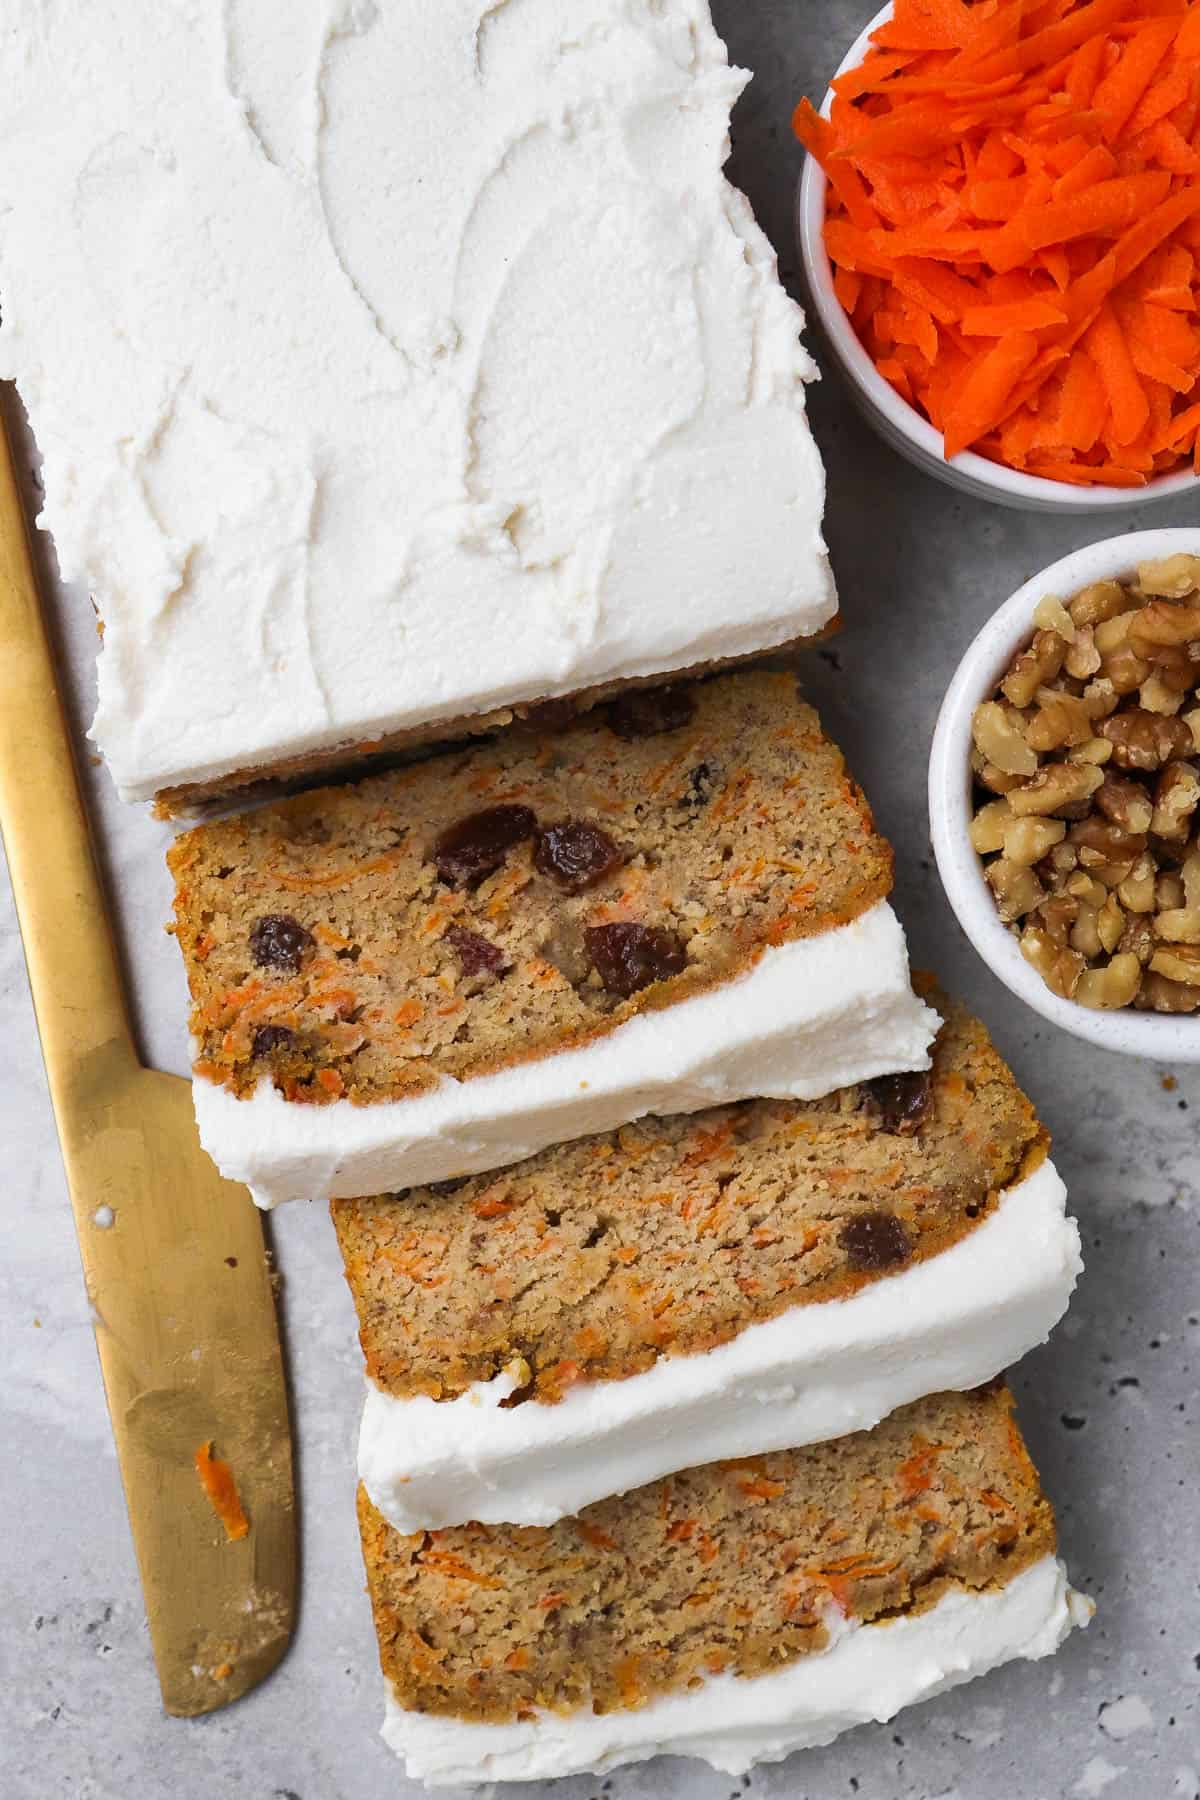 Sliced up frosted bread with walnuts, carrot and gold knife on the side for garnish.